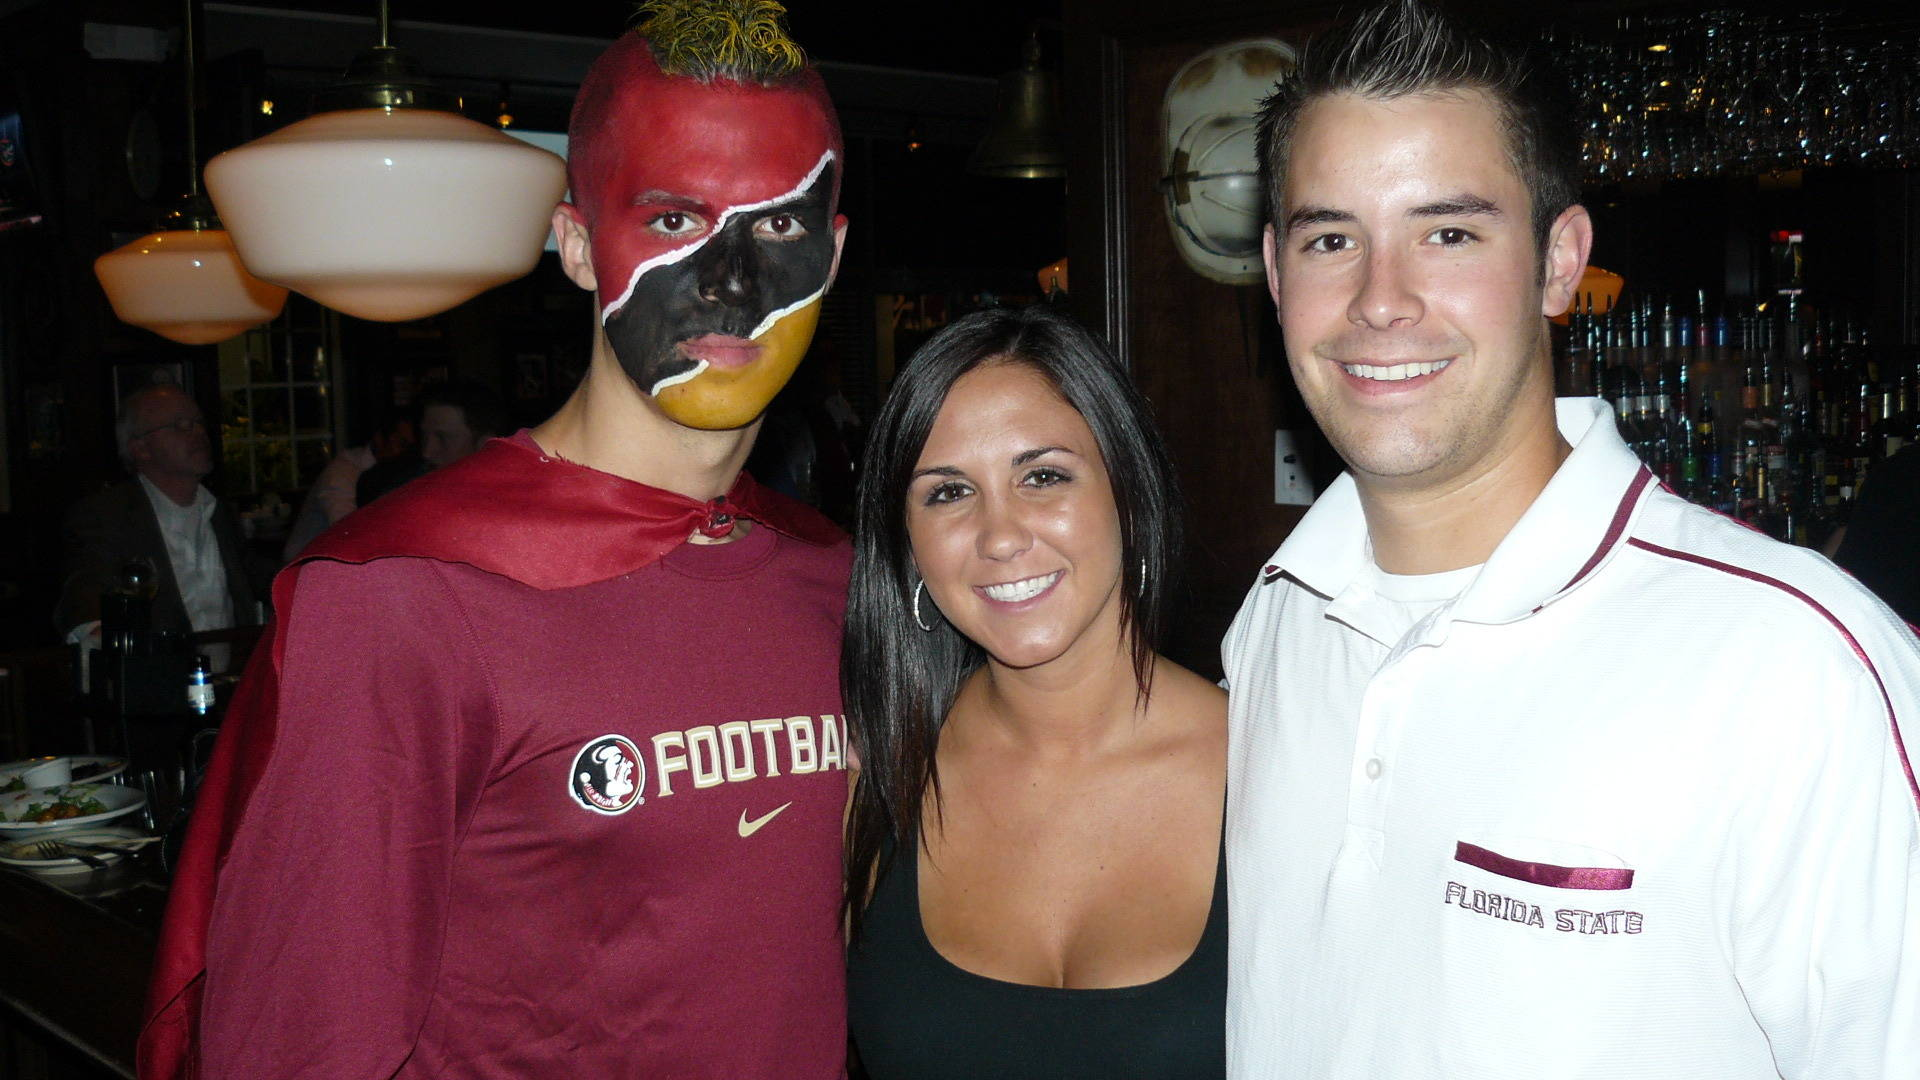 The Road Warriors and Super Noles with members of the Charlotte Seminole Booster Club.